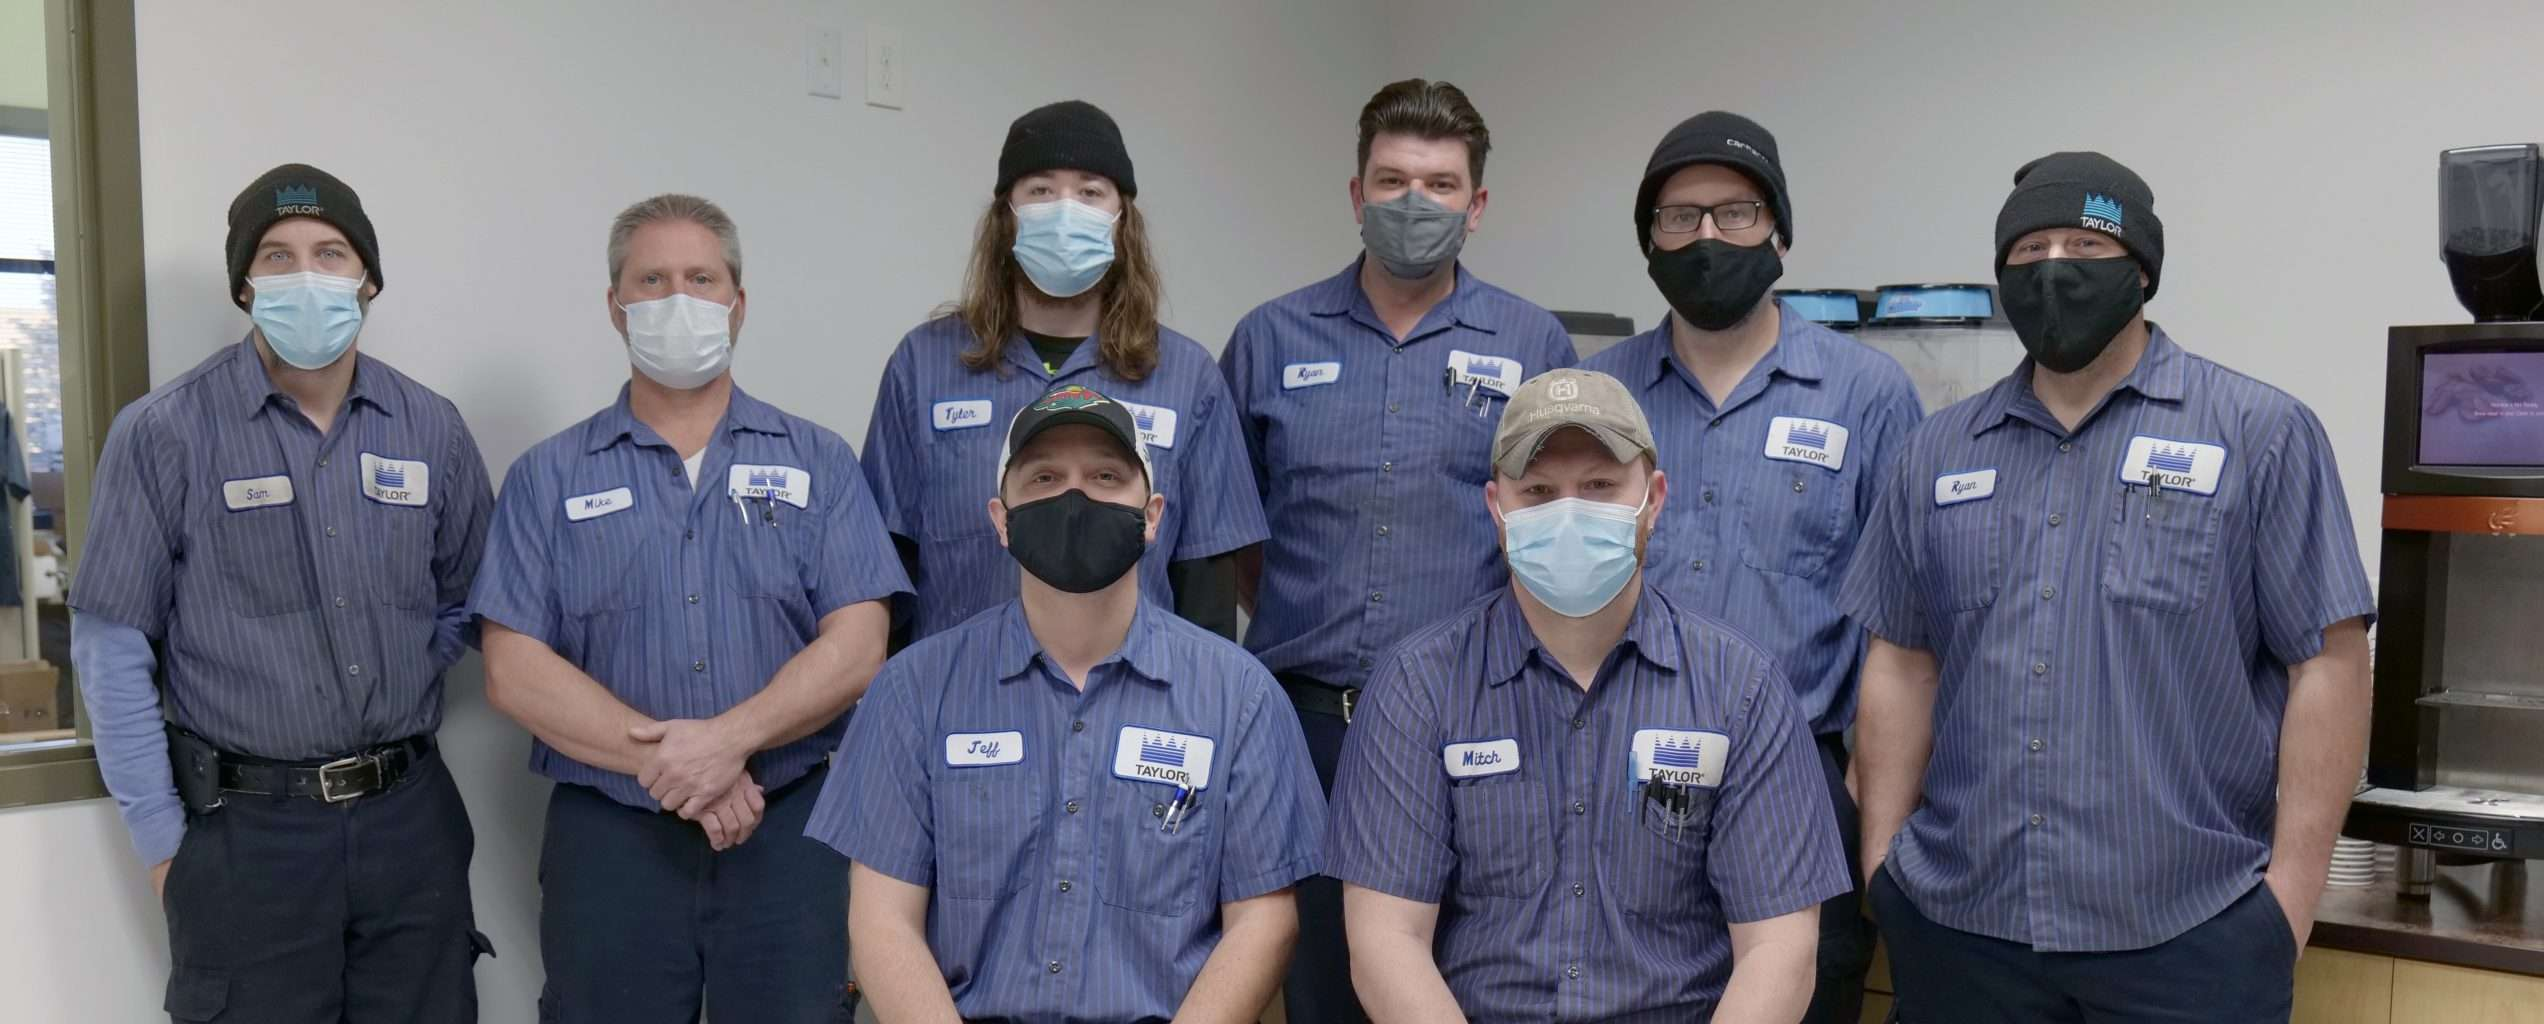 our service department technicians standing in our test kitchen